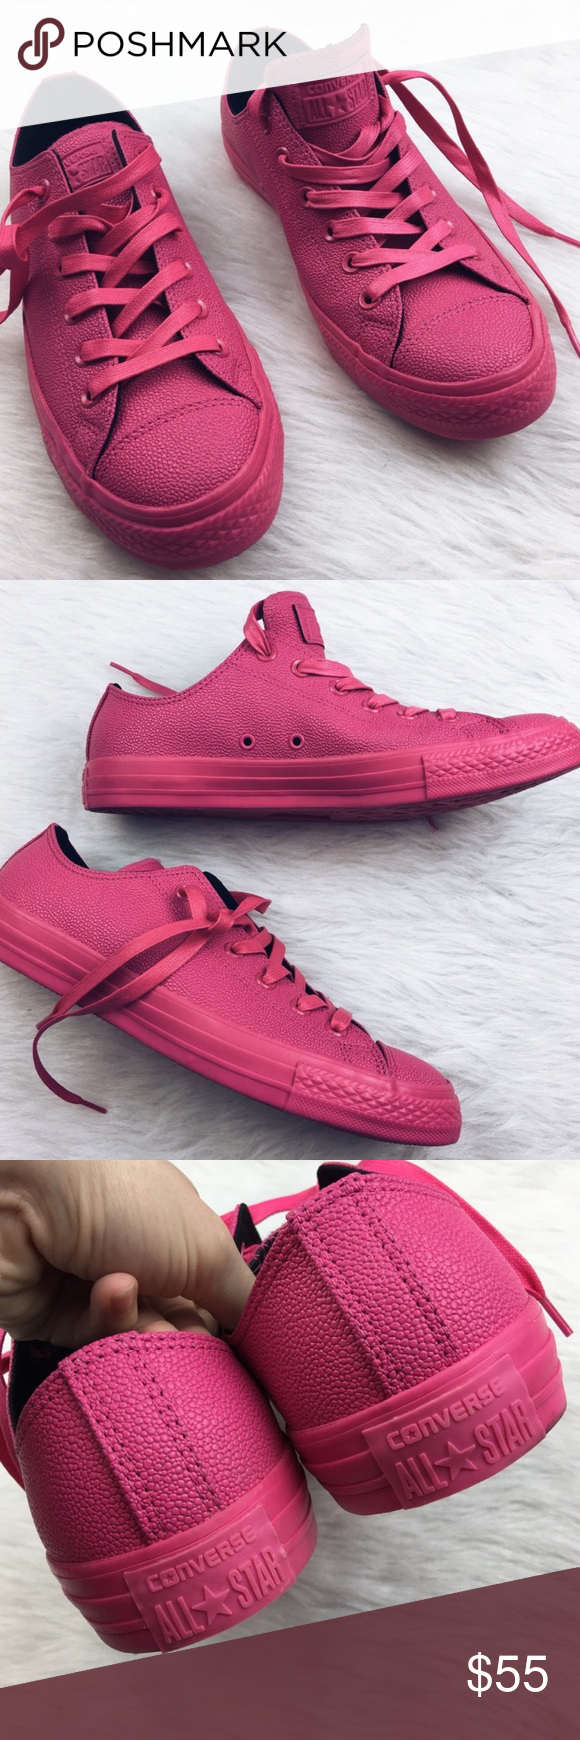 7e621857ee8c Converse unisex hot pink all star tennis shoes Brand new without box. Size  10.5 in